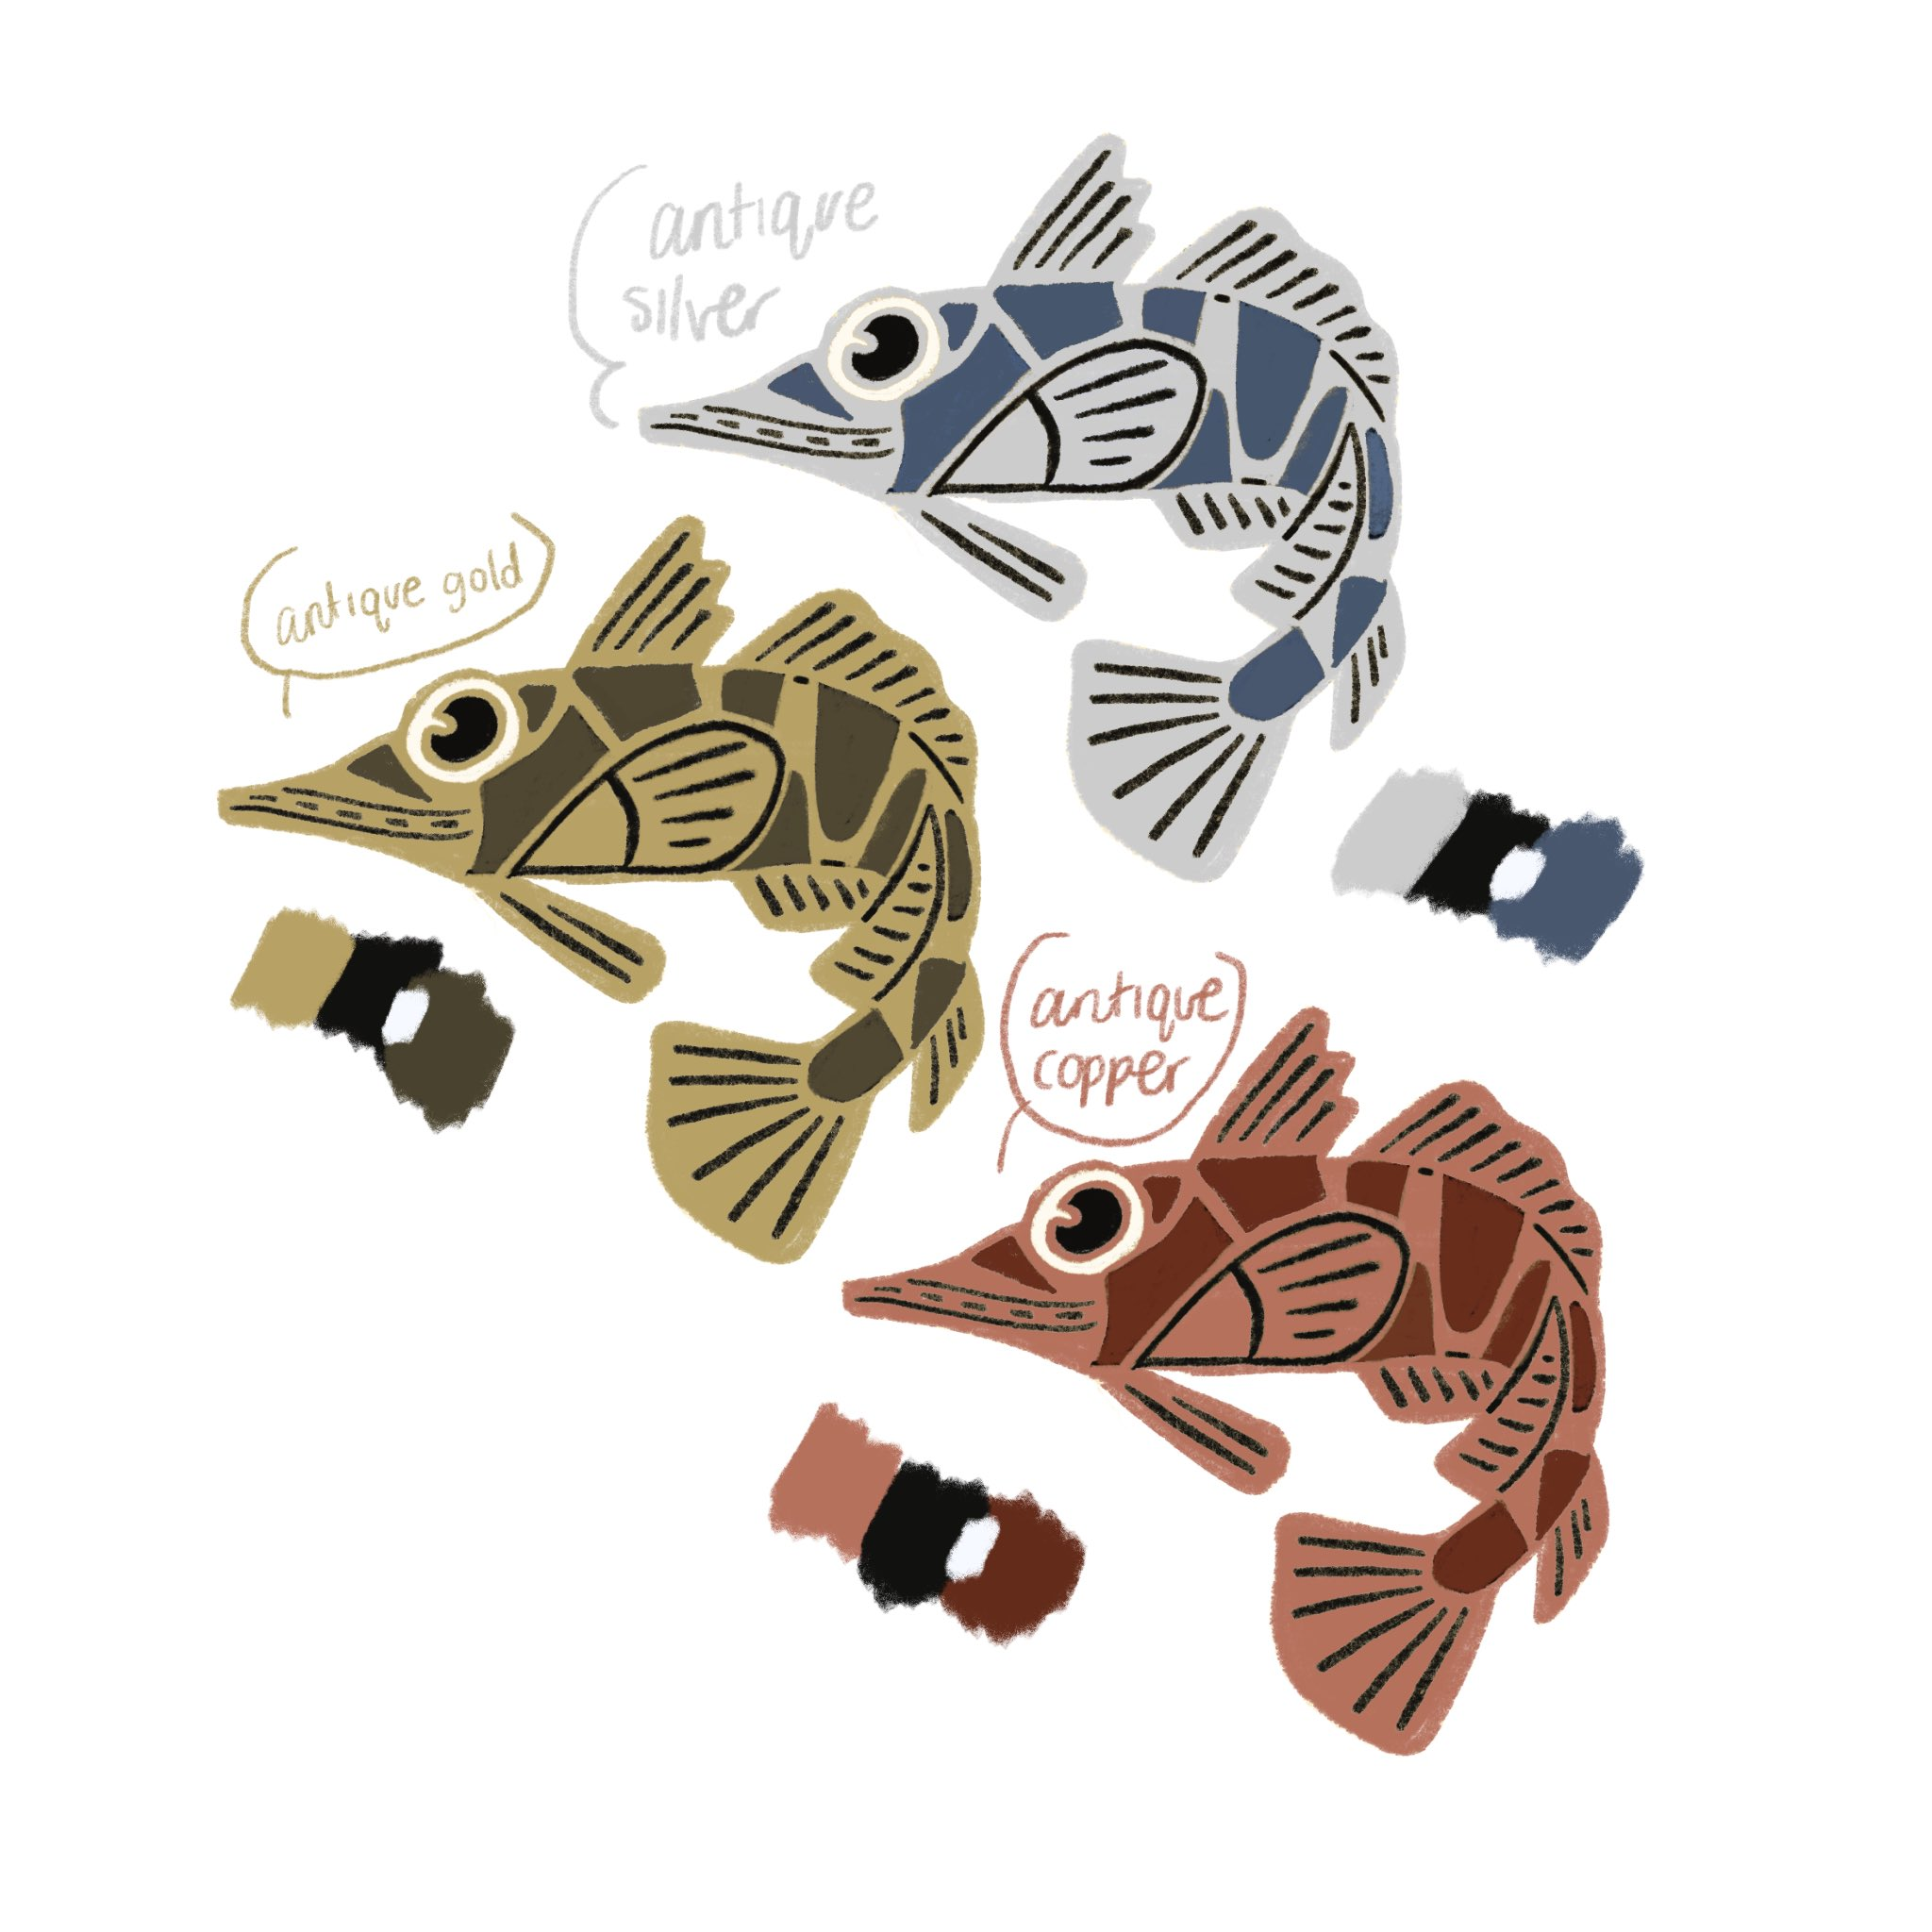 Icefish enamel pins designed for Bizarre Beasts